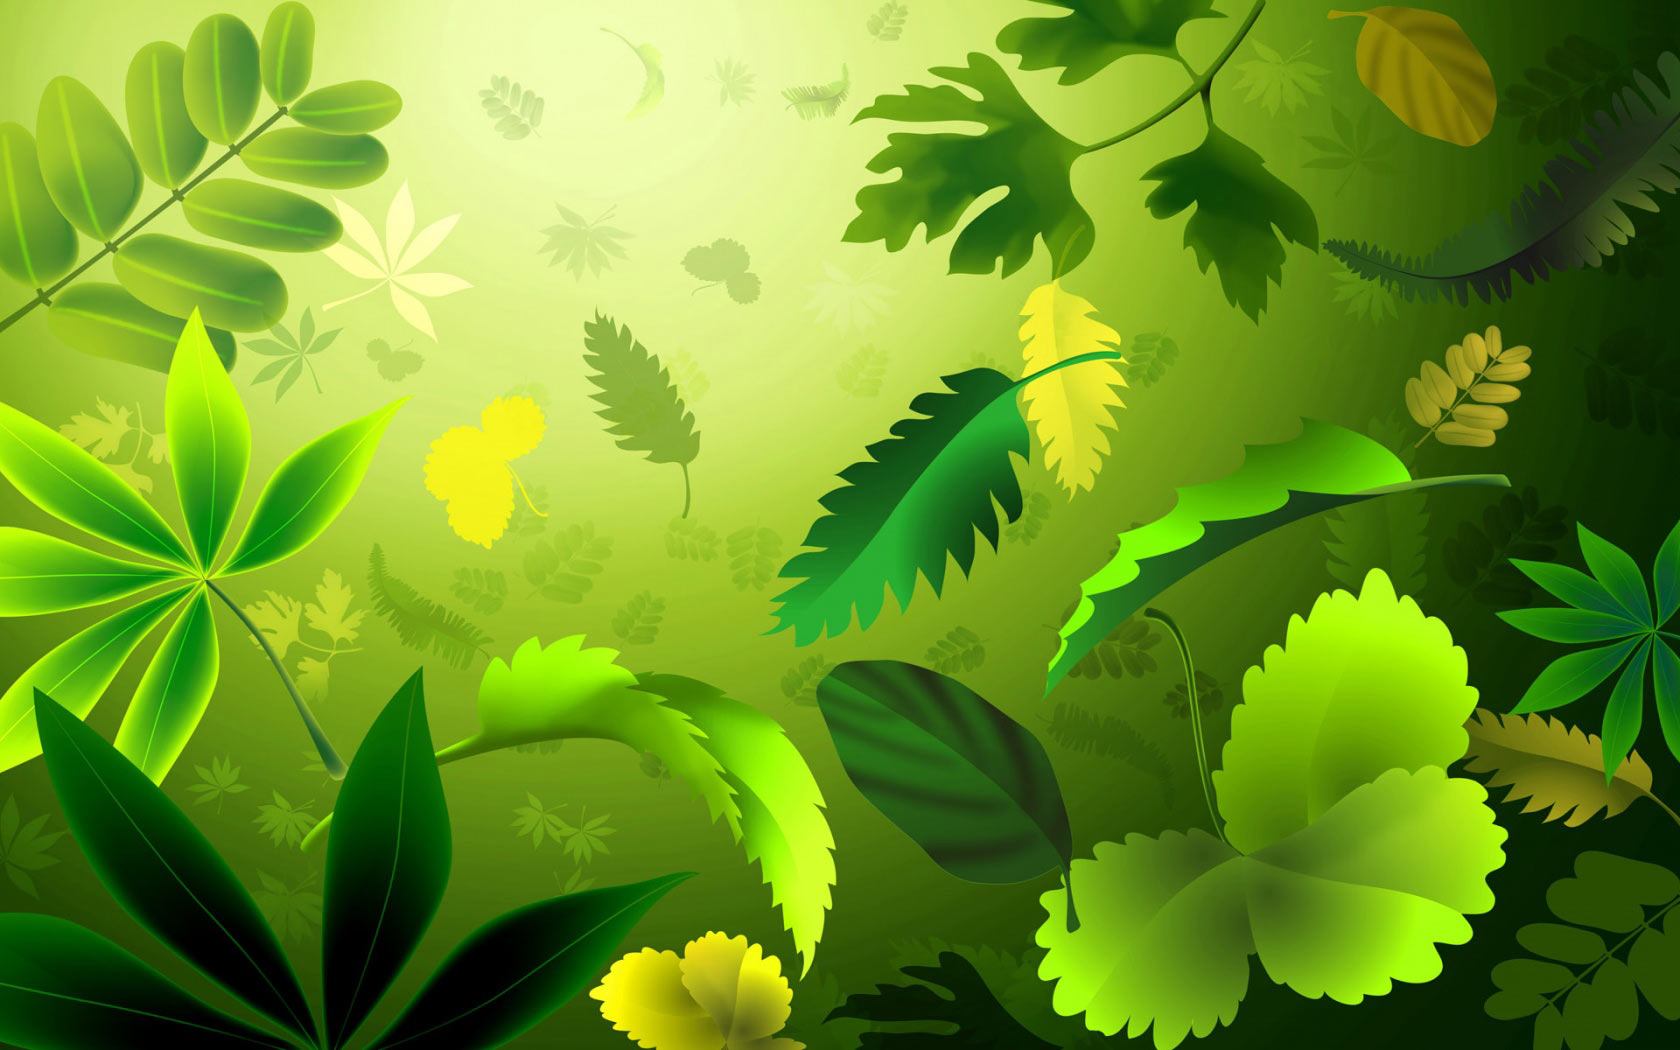 Backgrounds   Computers   Windows 7 Free Nature Clipart Background